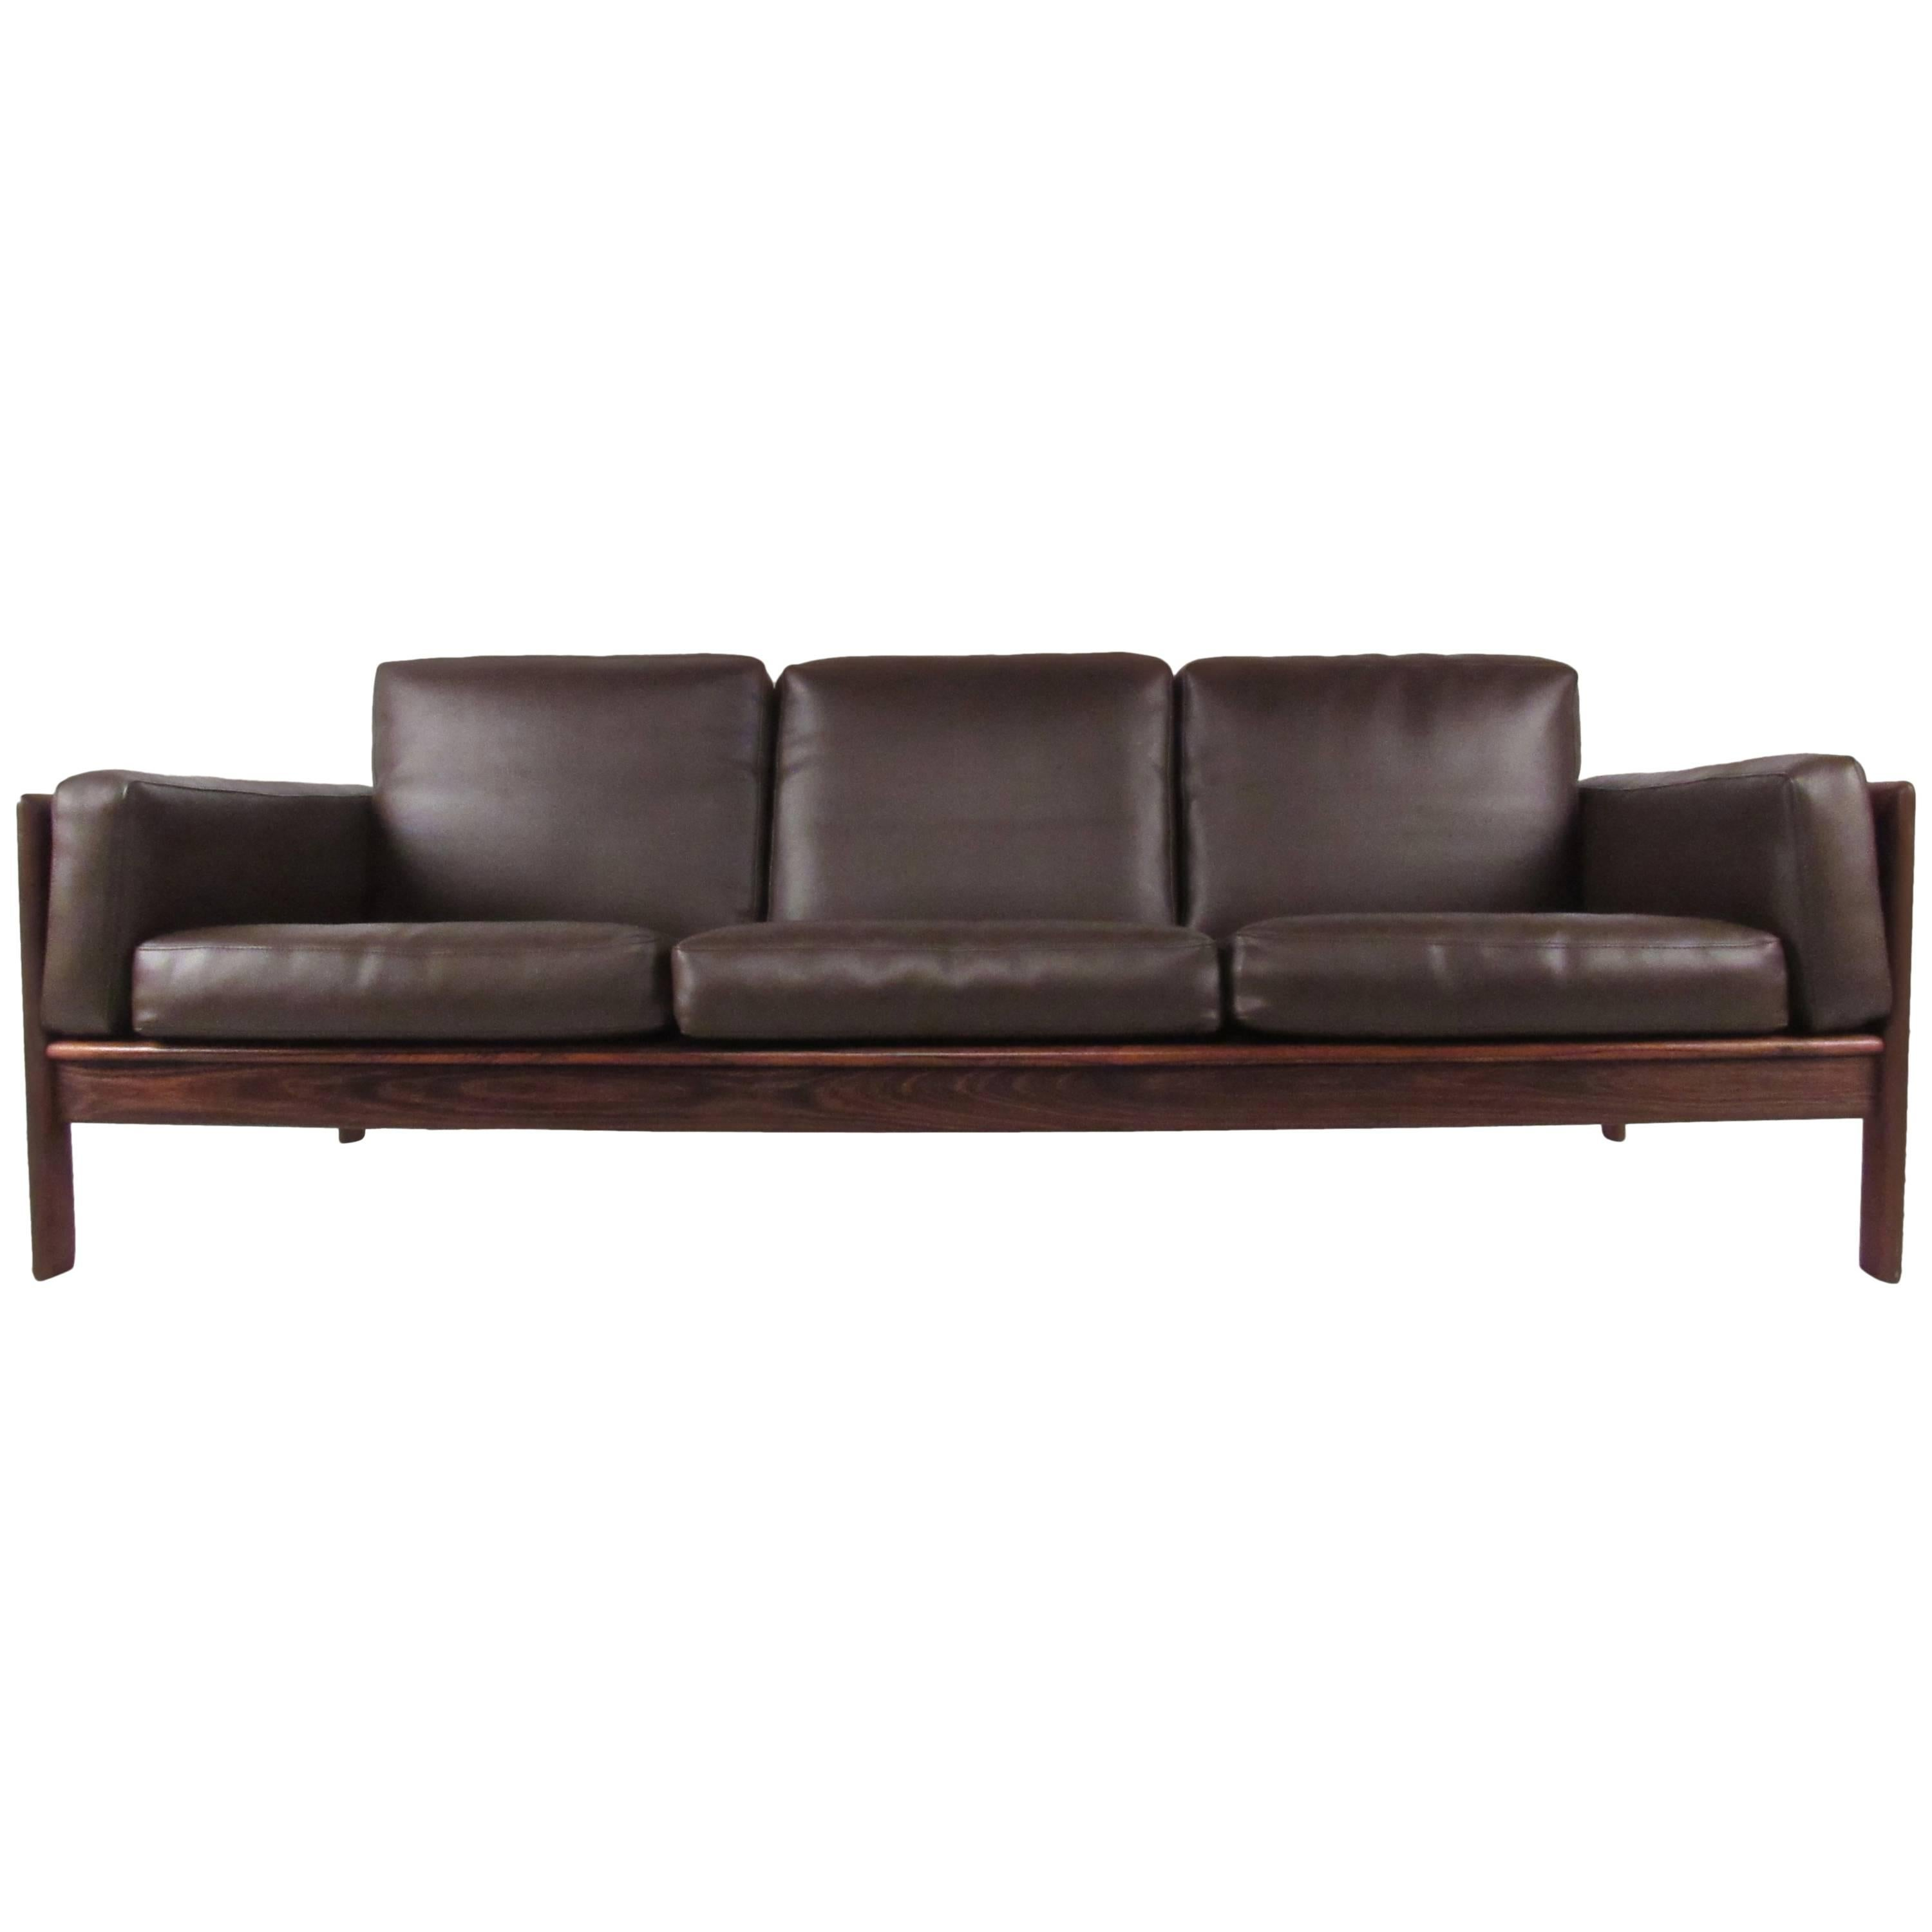 Mid-Century Rosewood Sofa by Komfort For Sale at 1stdibs